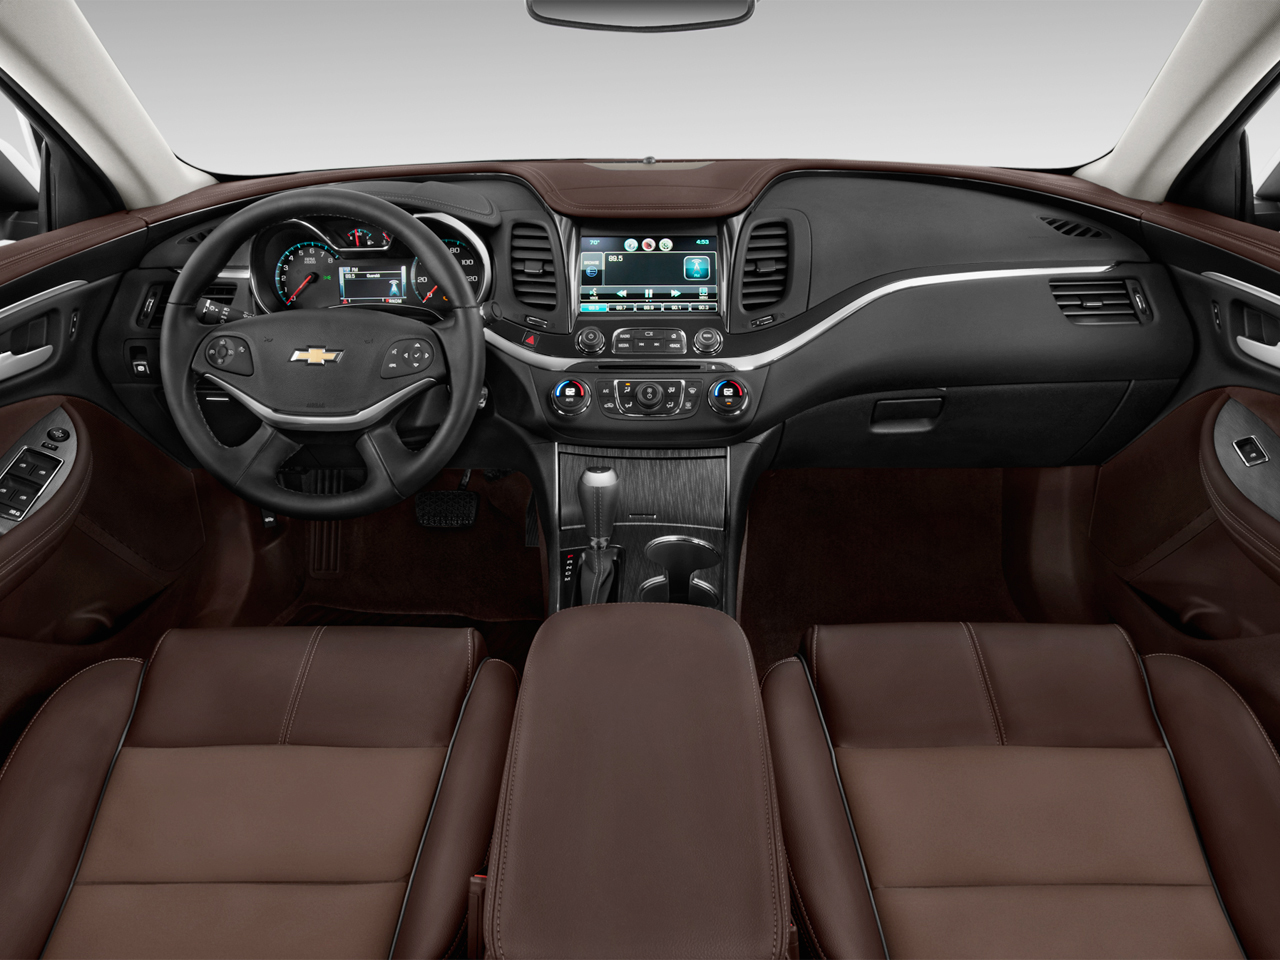 2016 Chevrolet Impala Dashboard Interior